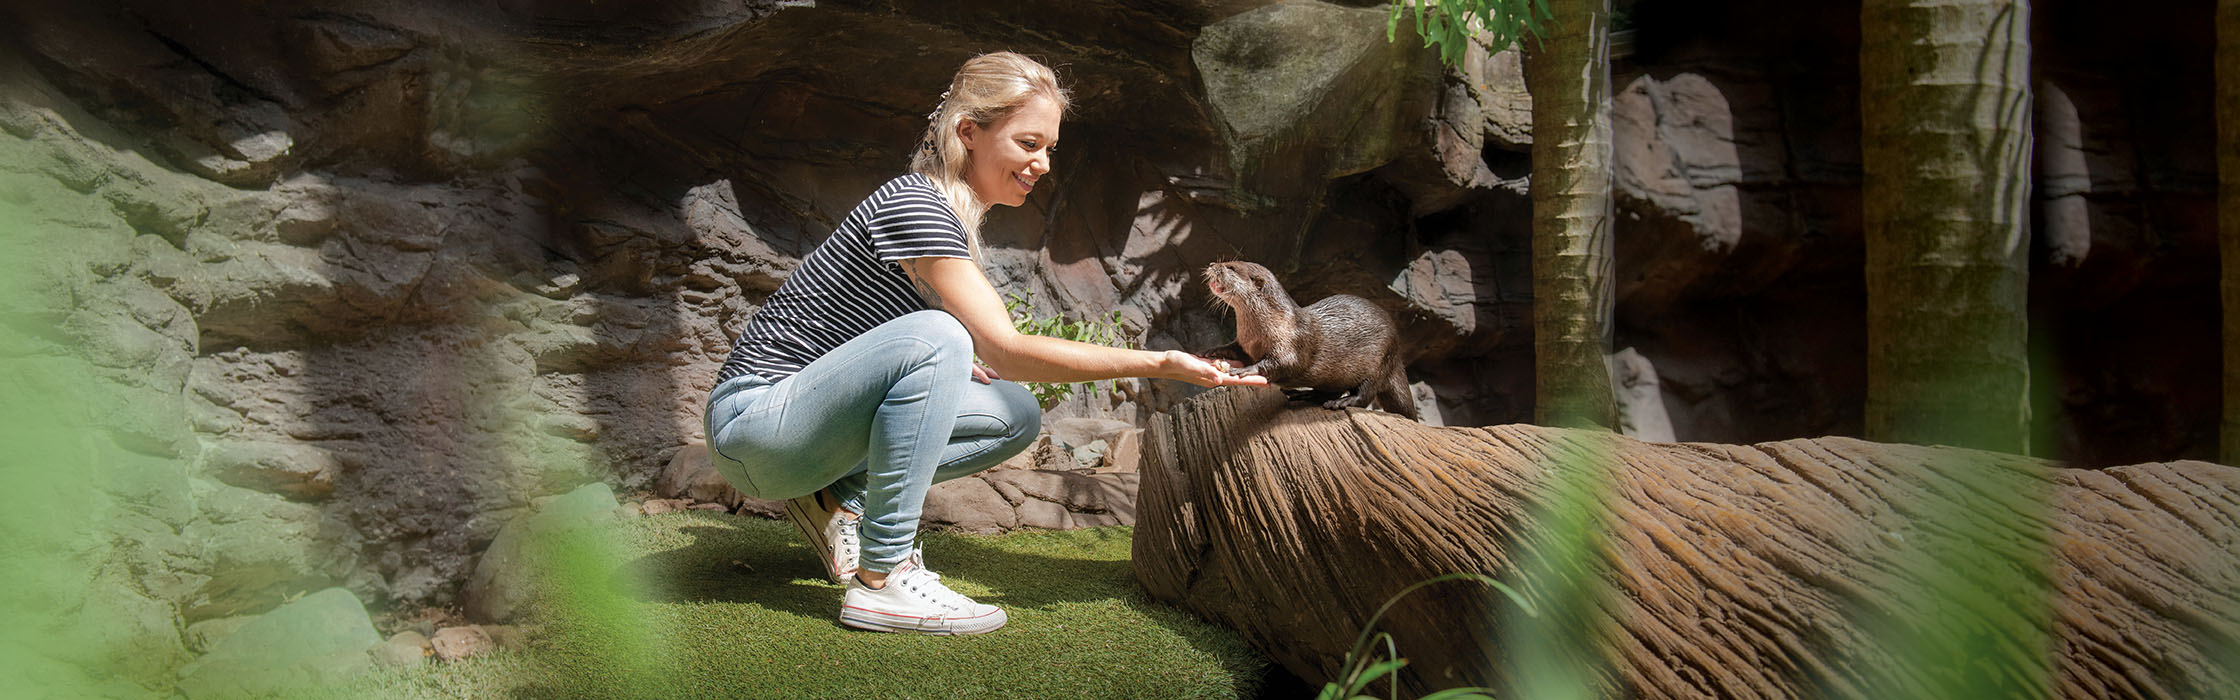 Experiences-Animal Encounters-Otter2240x700